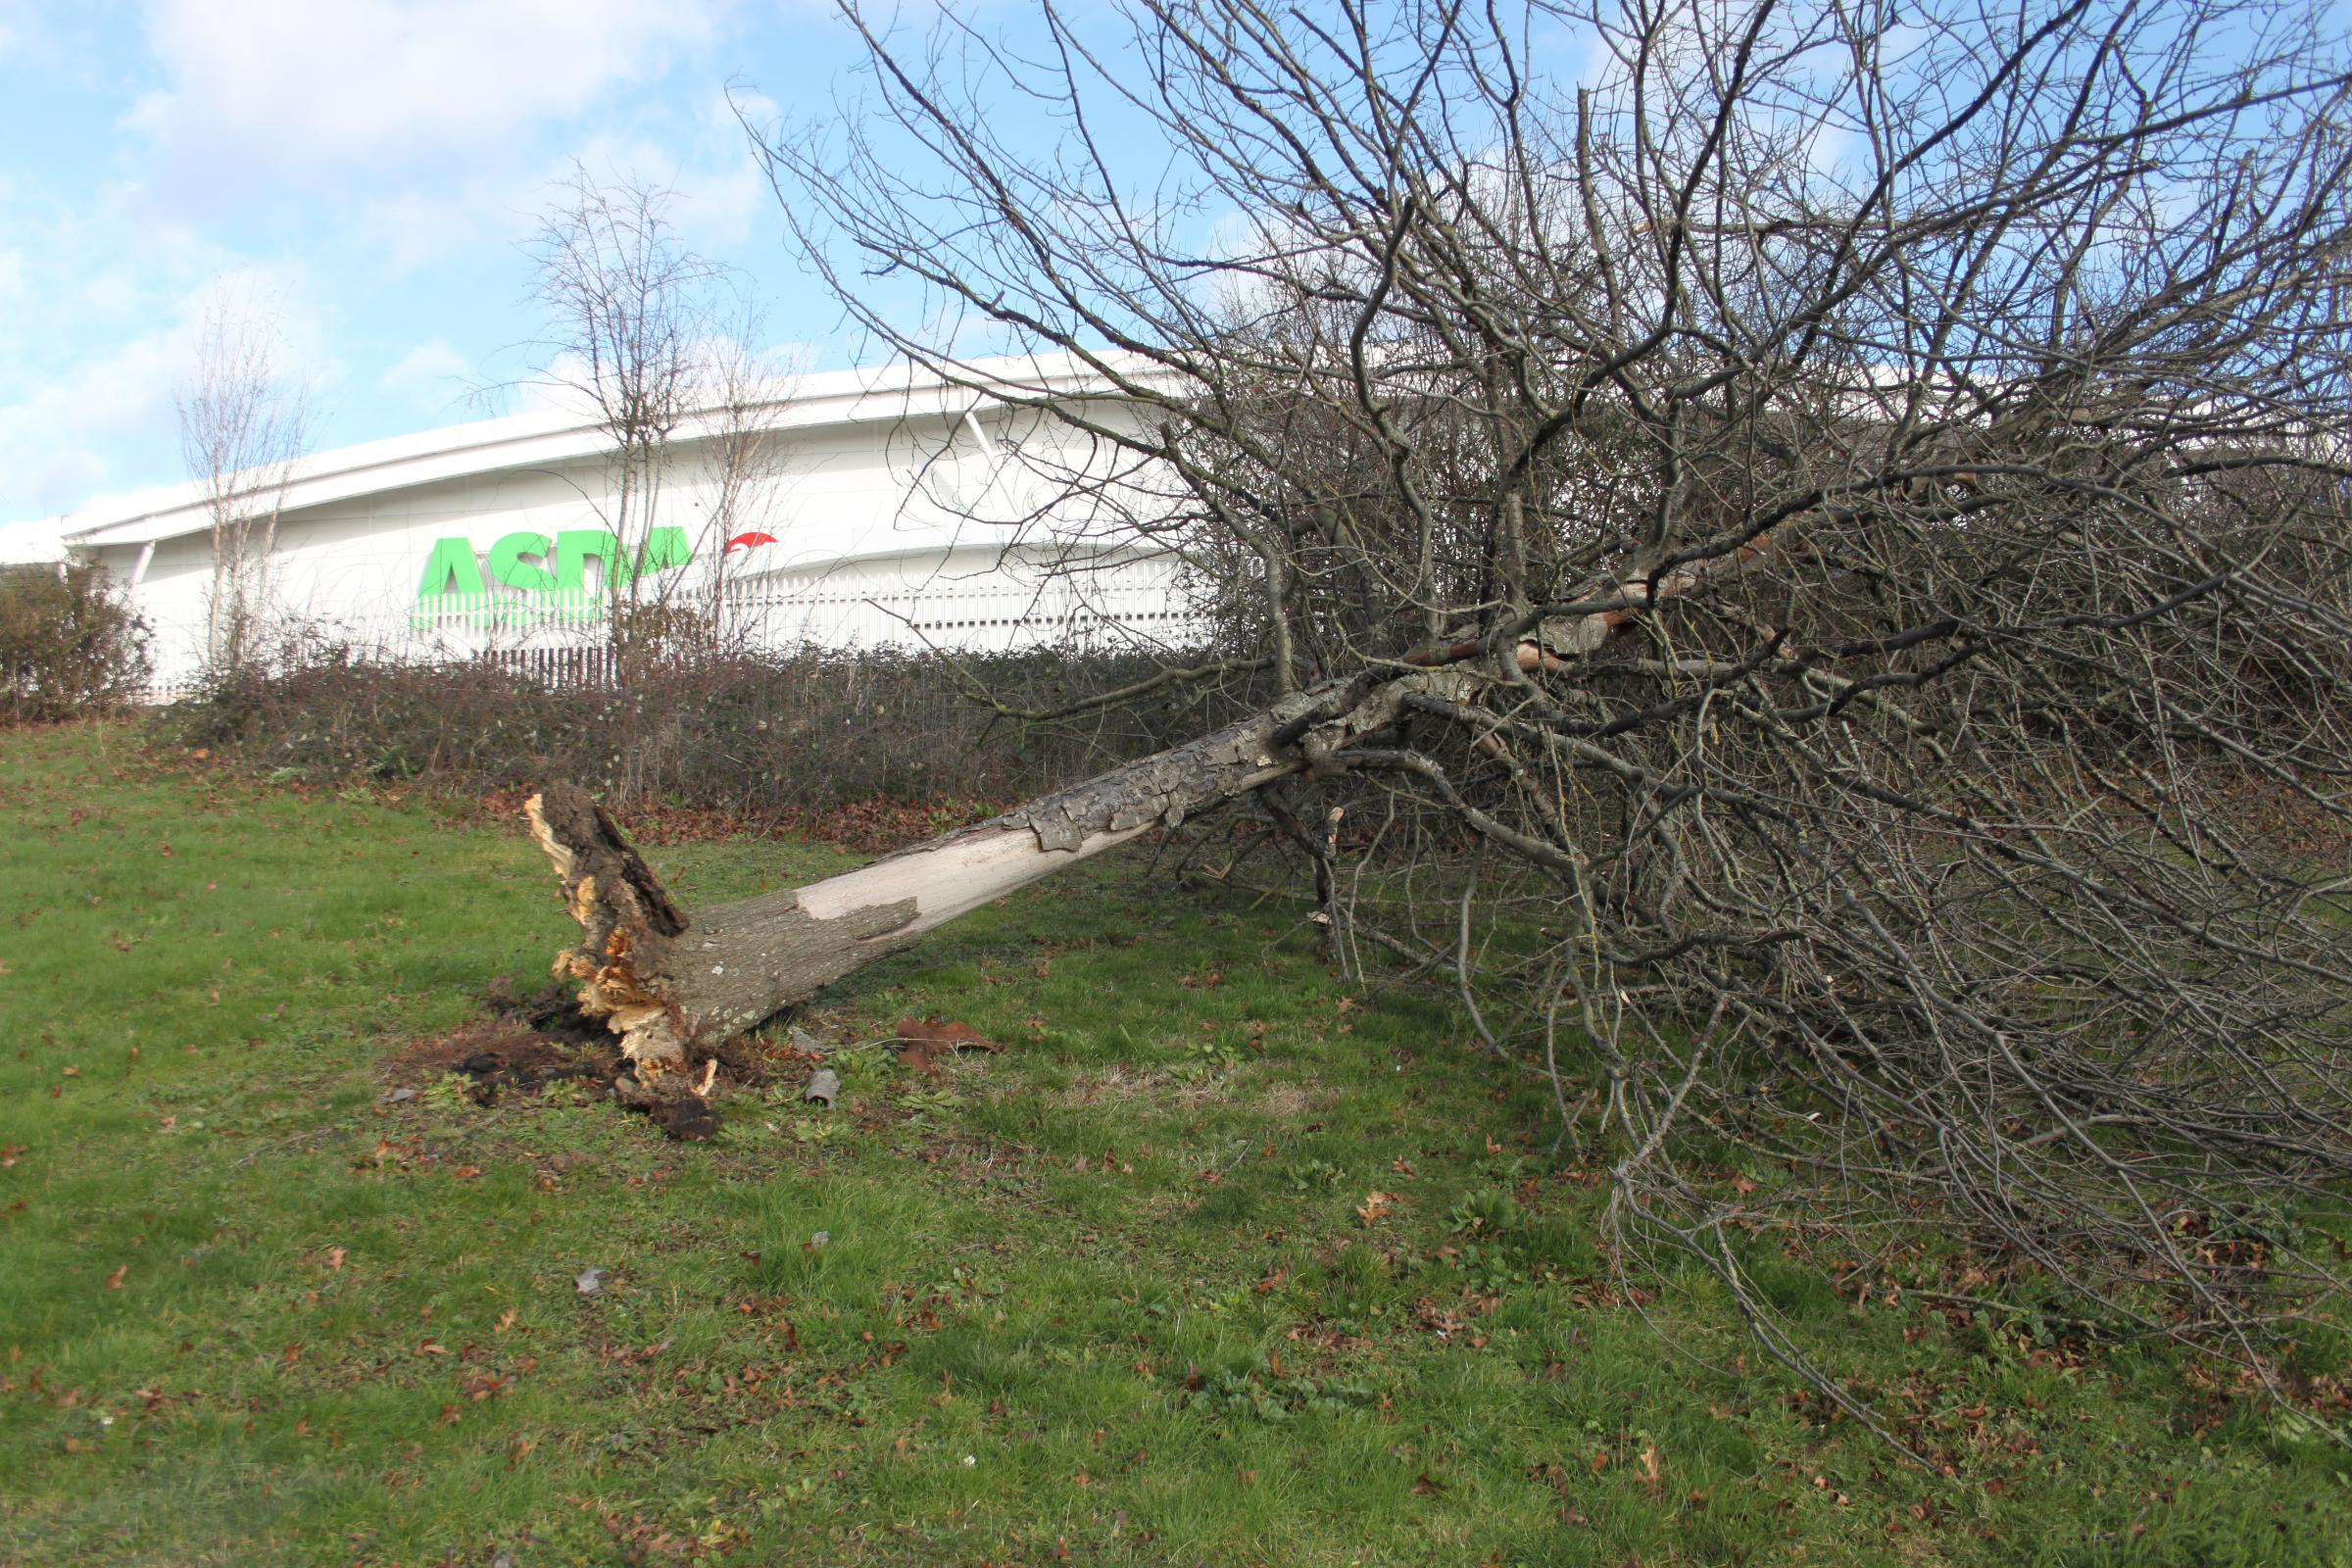 A tree blown over near Asda, in Turner Rise